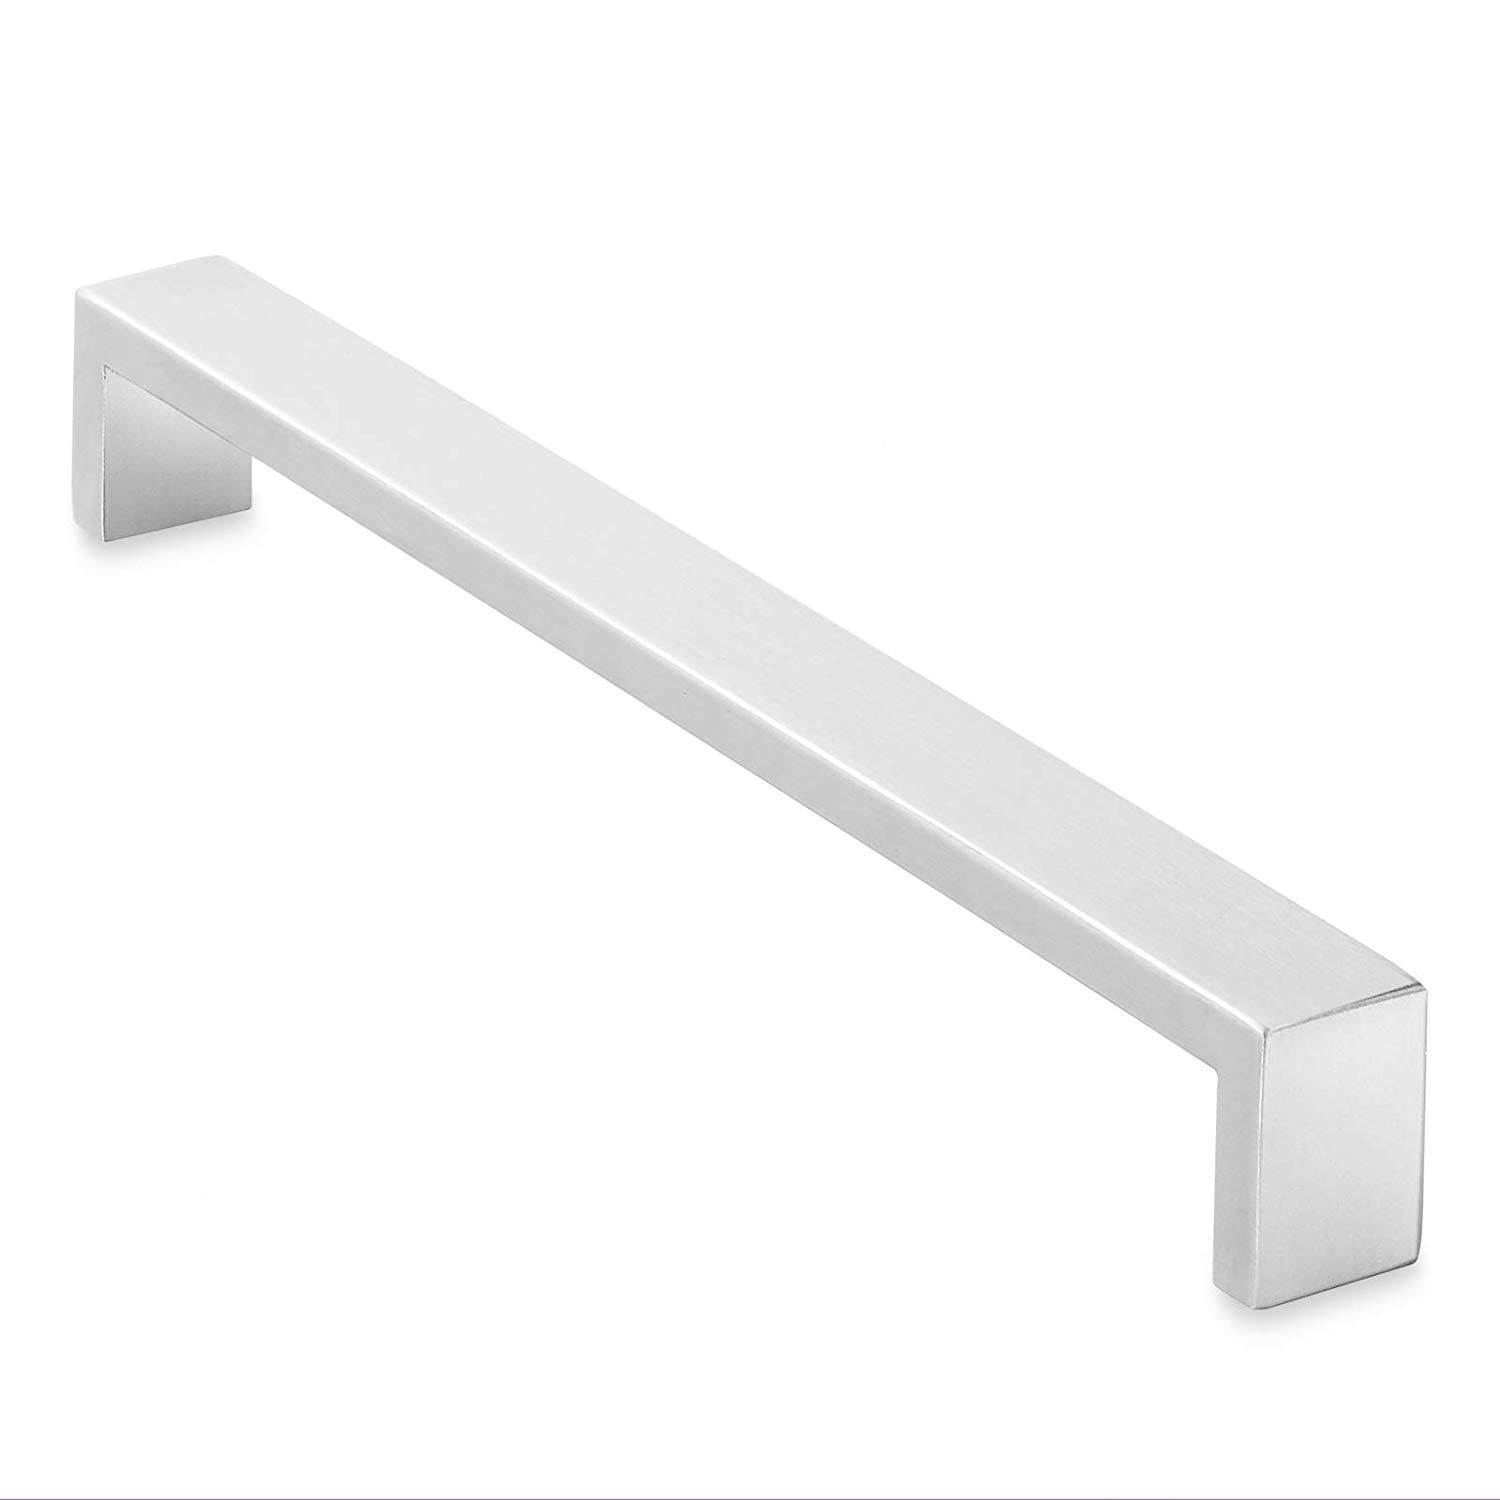 Cauldham Solid Stainless Steel Cabinet Hardware Square Handle Pull Brushed Satin Nickel Stainless Steel Cabinet Hardware Cabinet Hardware Square Steel Cabinet